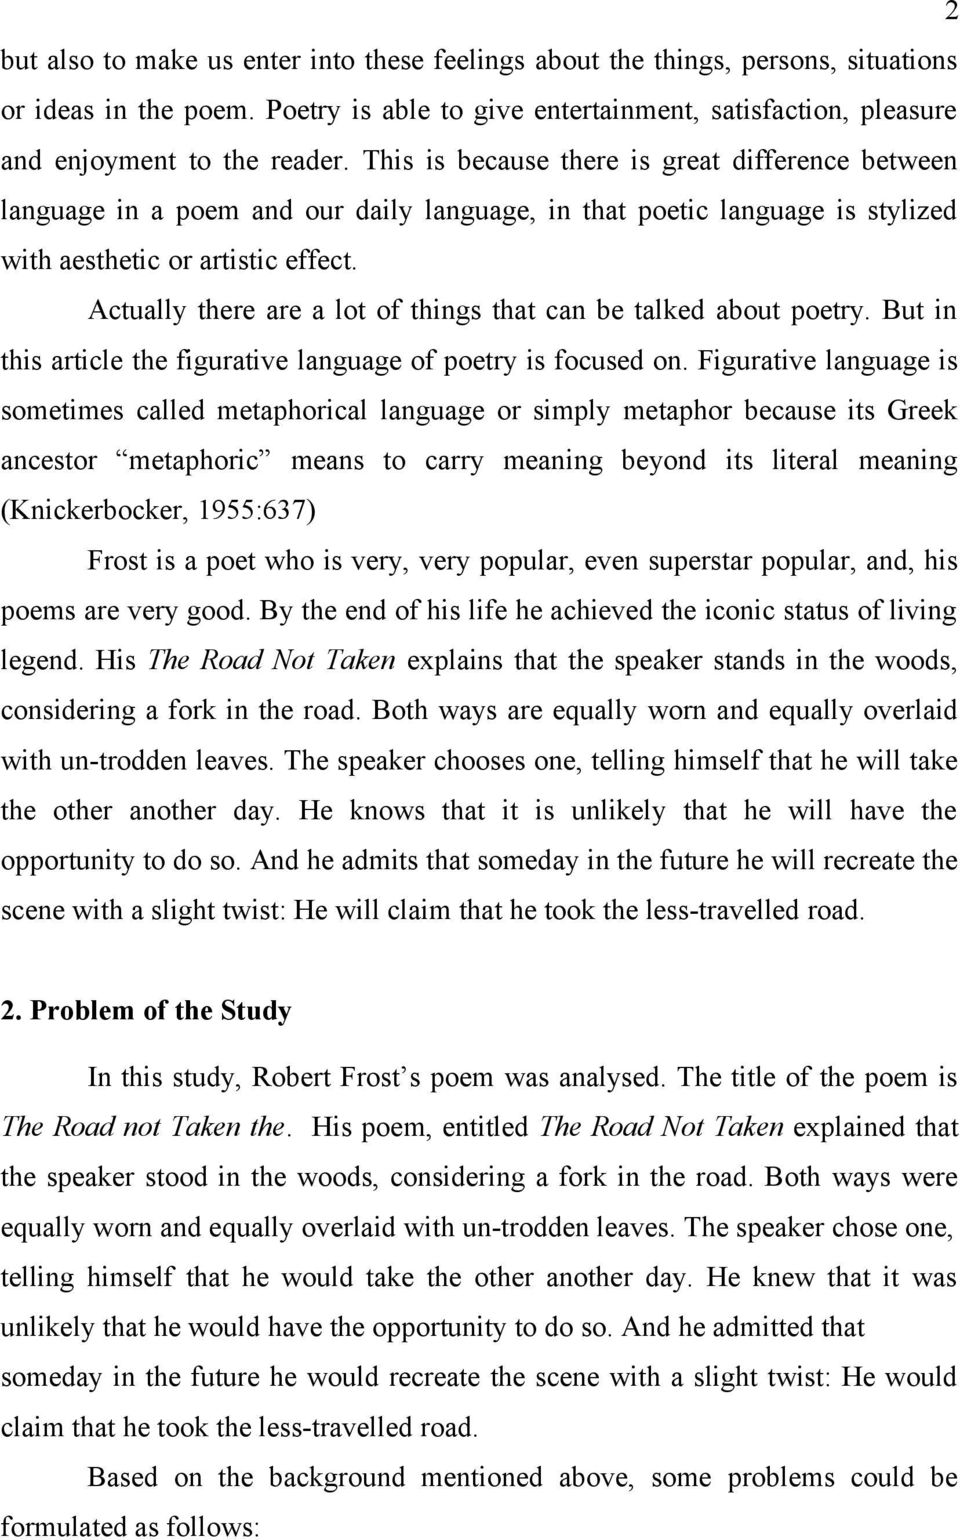 Actually there are a lot of things that can be talked about poetry. But in this article the figurative language of poetry is focused on.